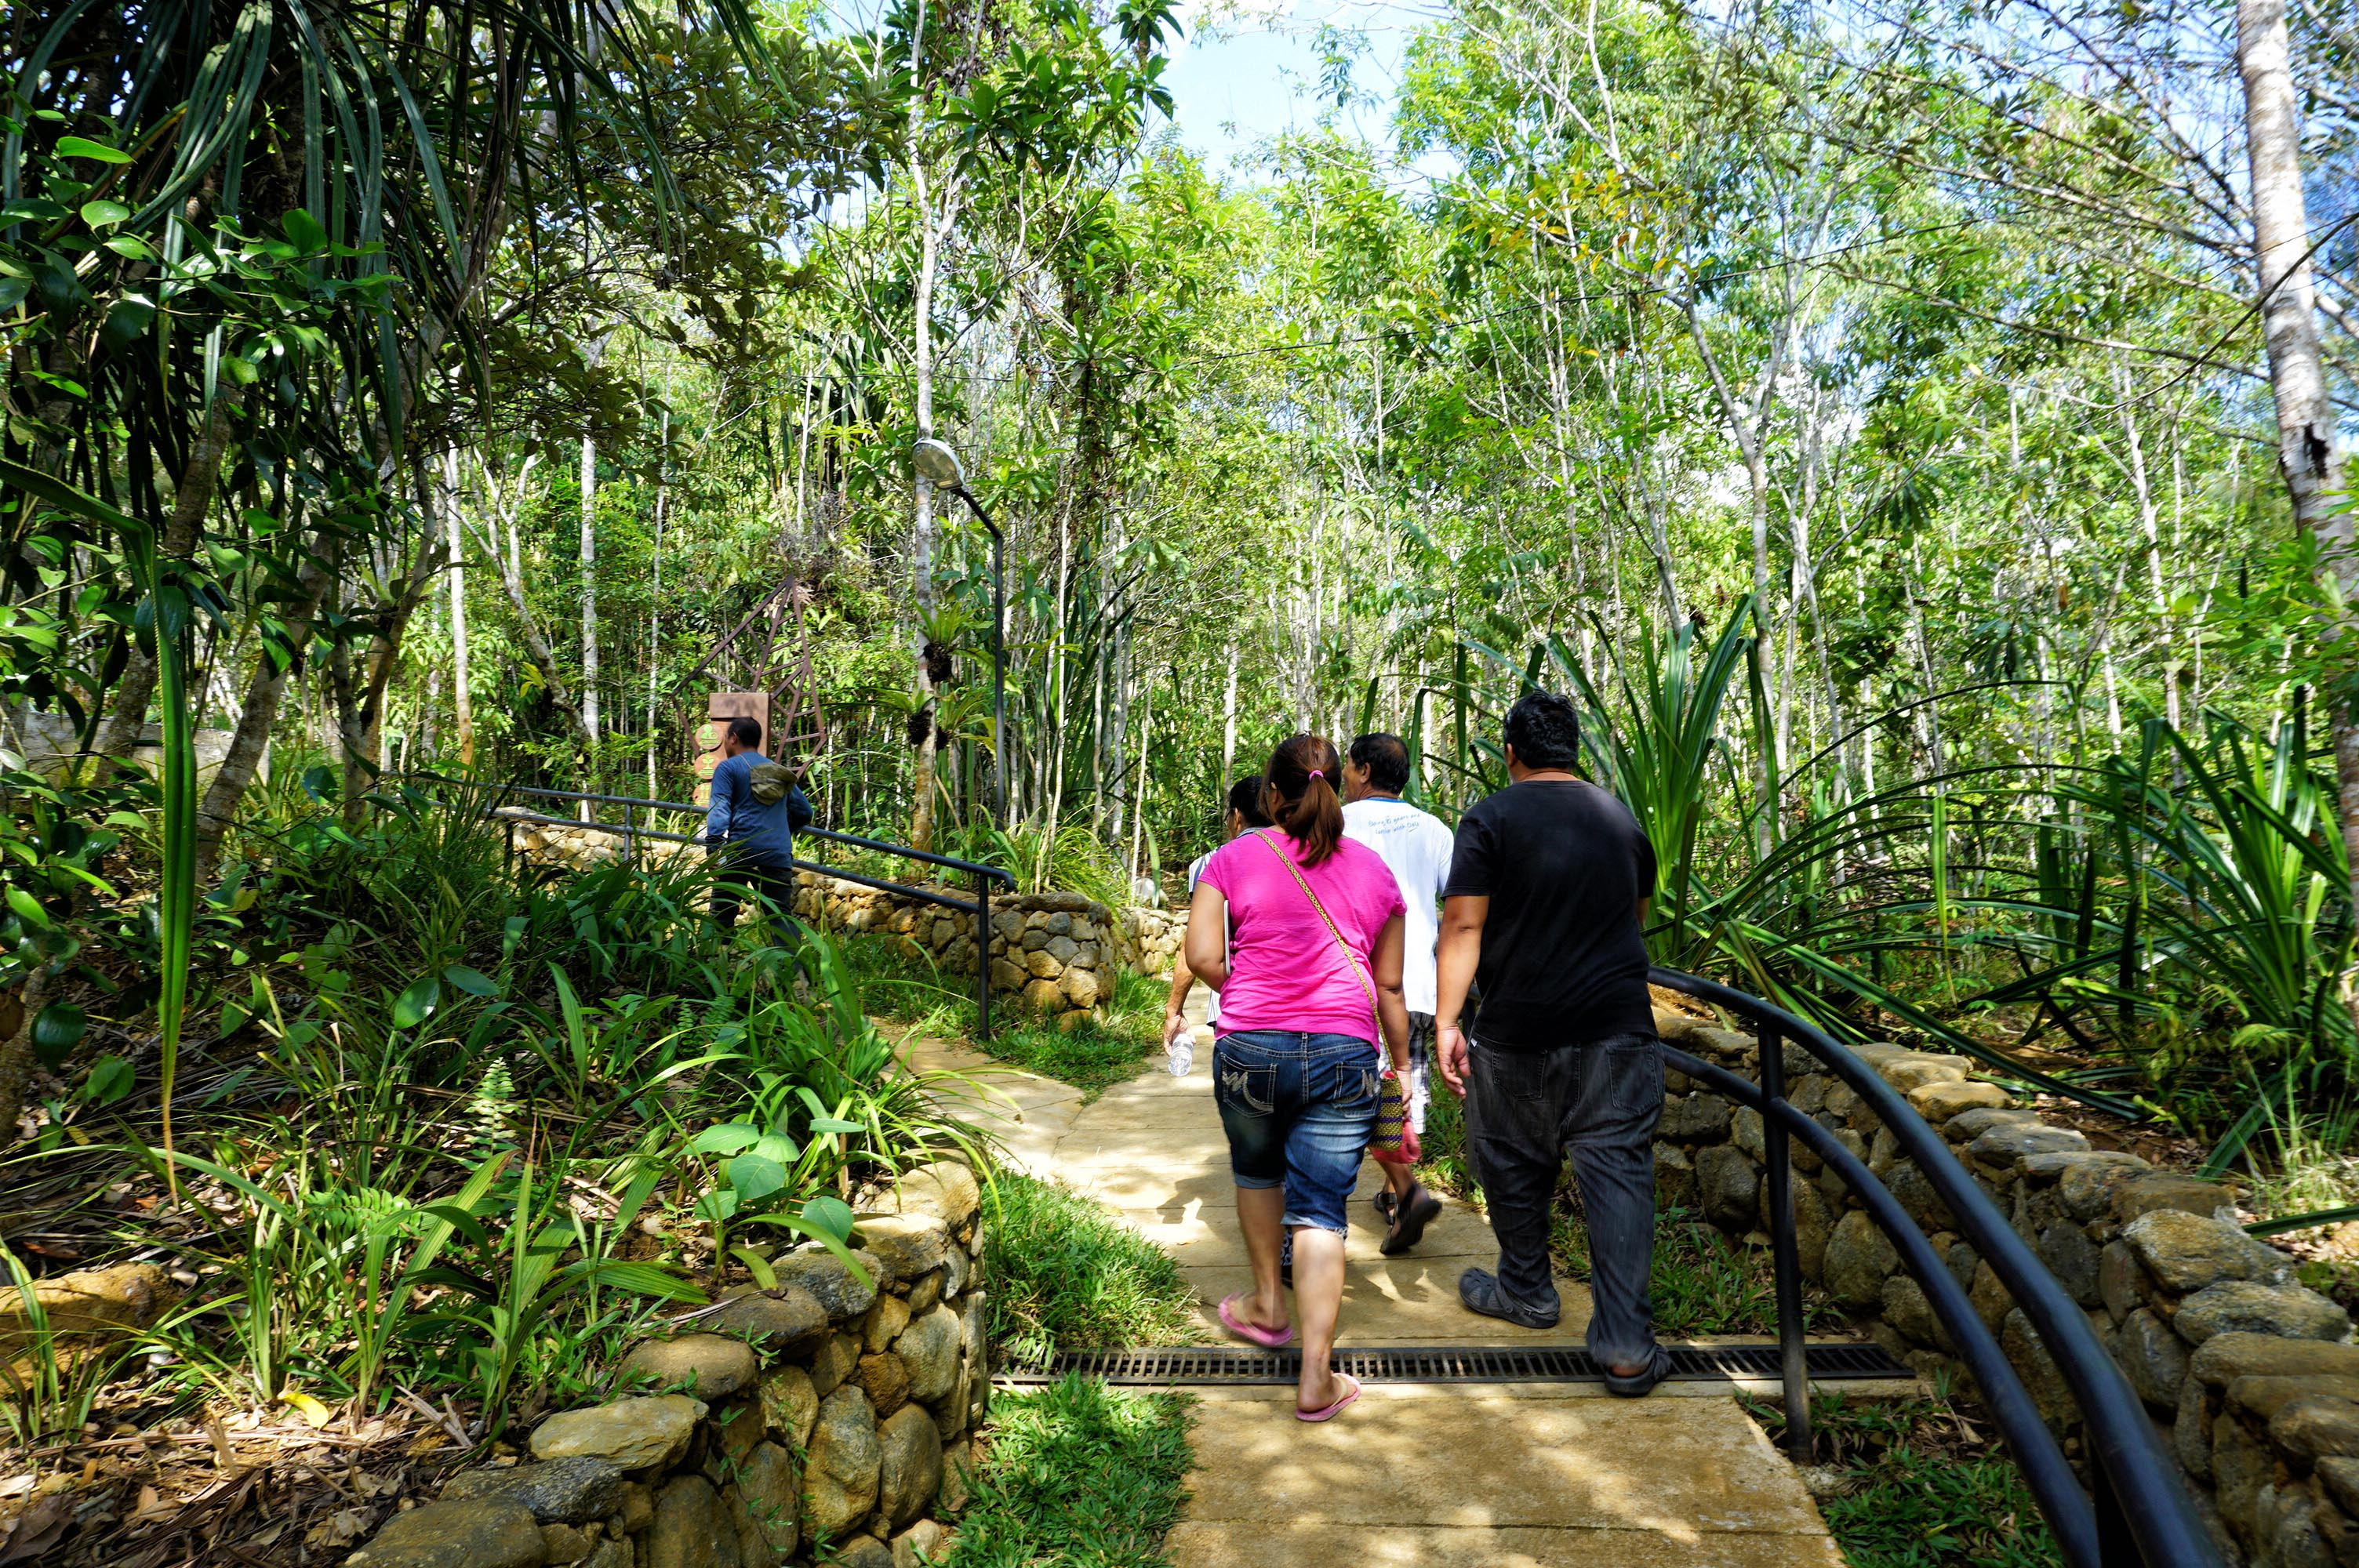 Guests make their way up to the museum. Aside from the museum itself, there are also established trails within the complex. Photo by Louie Lapat